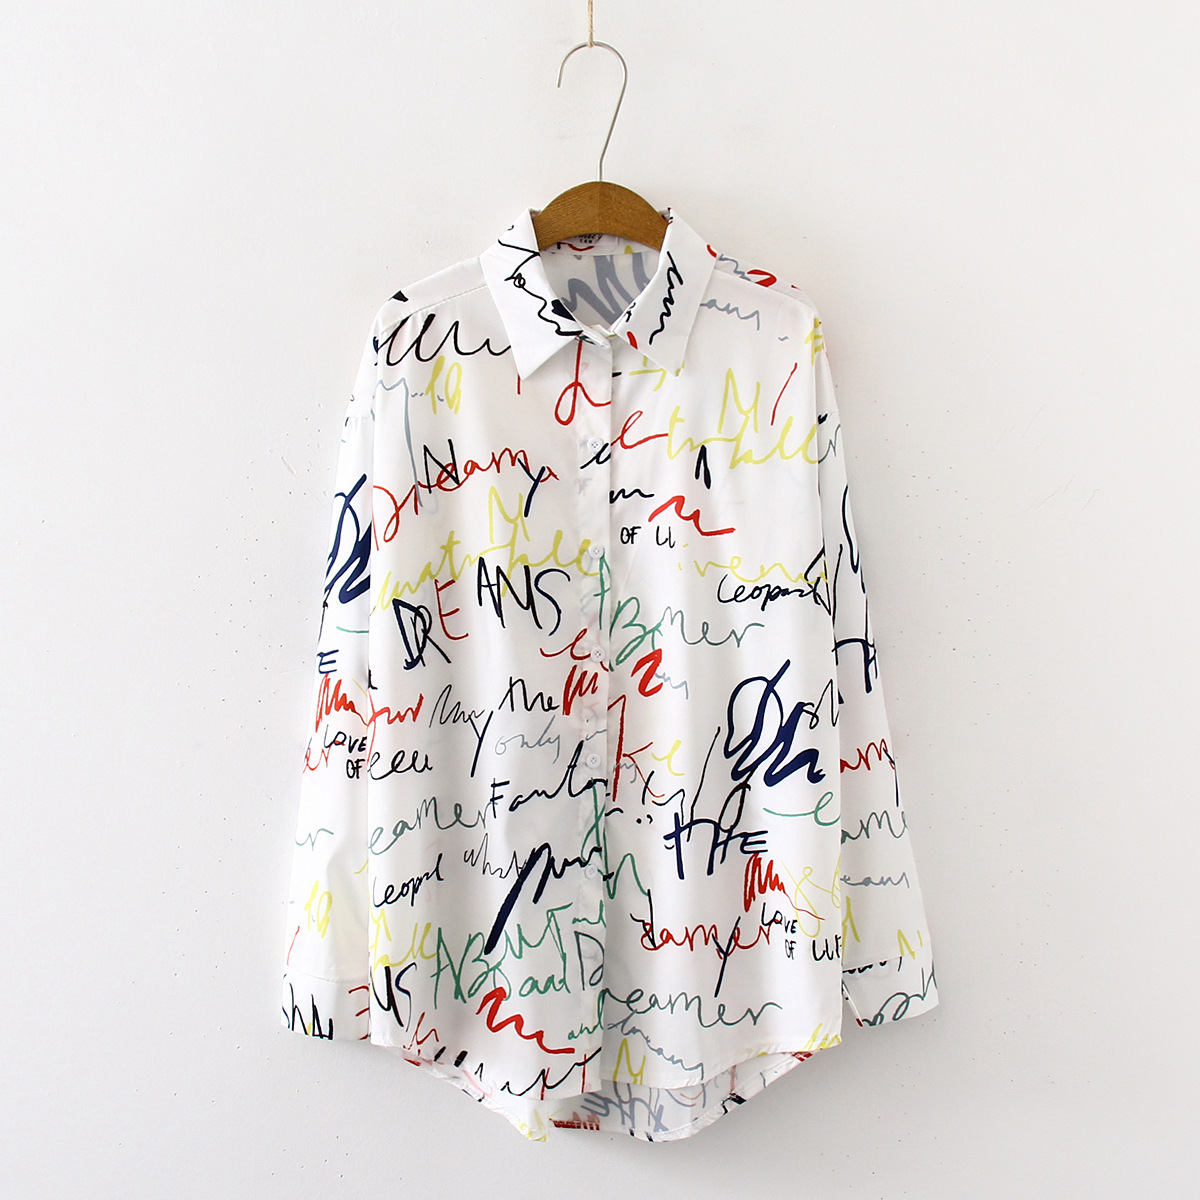 2019 Autumn New Women Long Sleeve Letters Print Cotton Blouses Shirts Casual Loose Office Tops Shirts Blusas